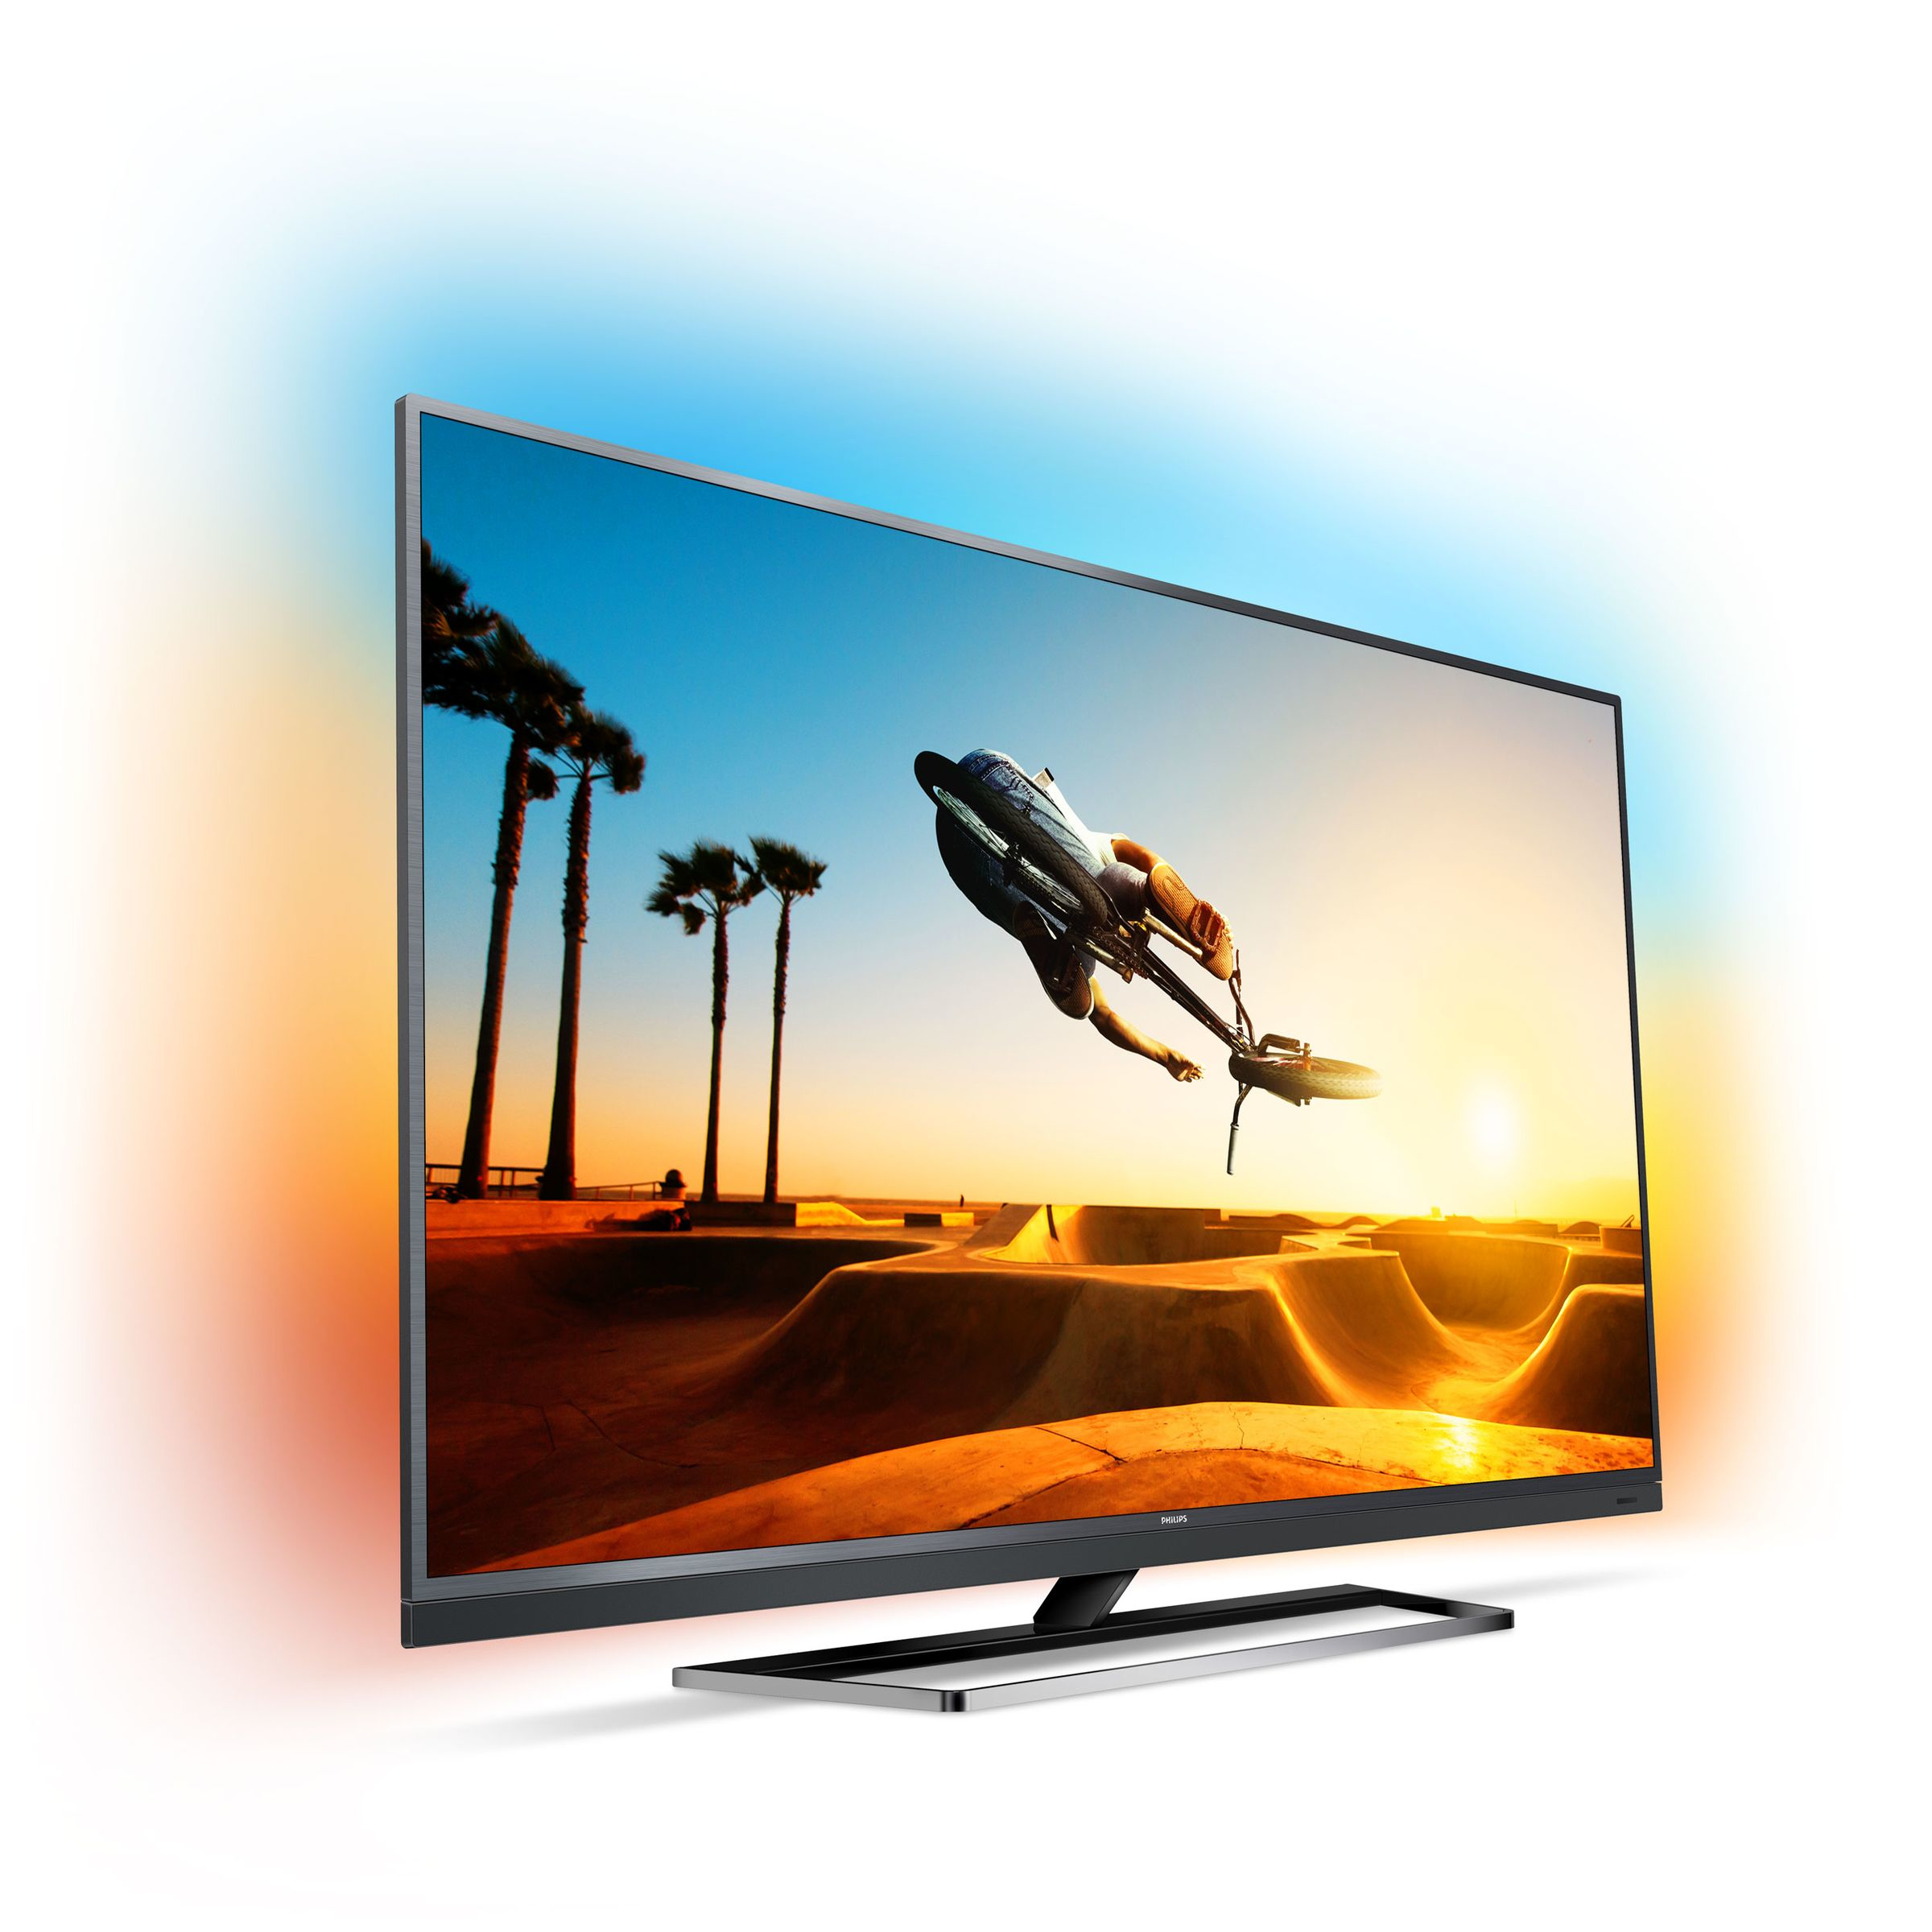 Philips 49PUS7502/12 Android-TV 123cm 49 Zoll LED 4K UHD A DVB-T2/C/S2 Ambilight für 1.029,00 Euro